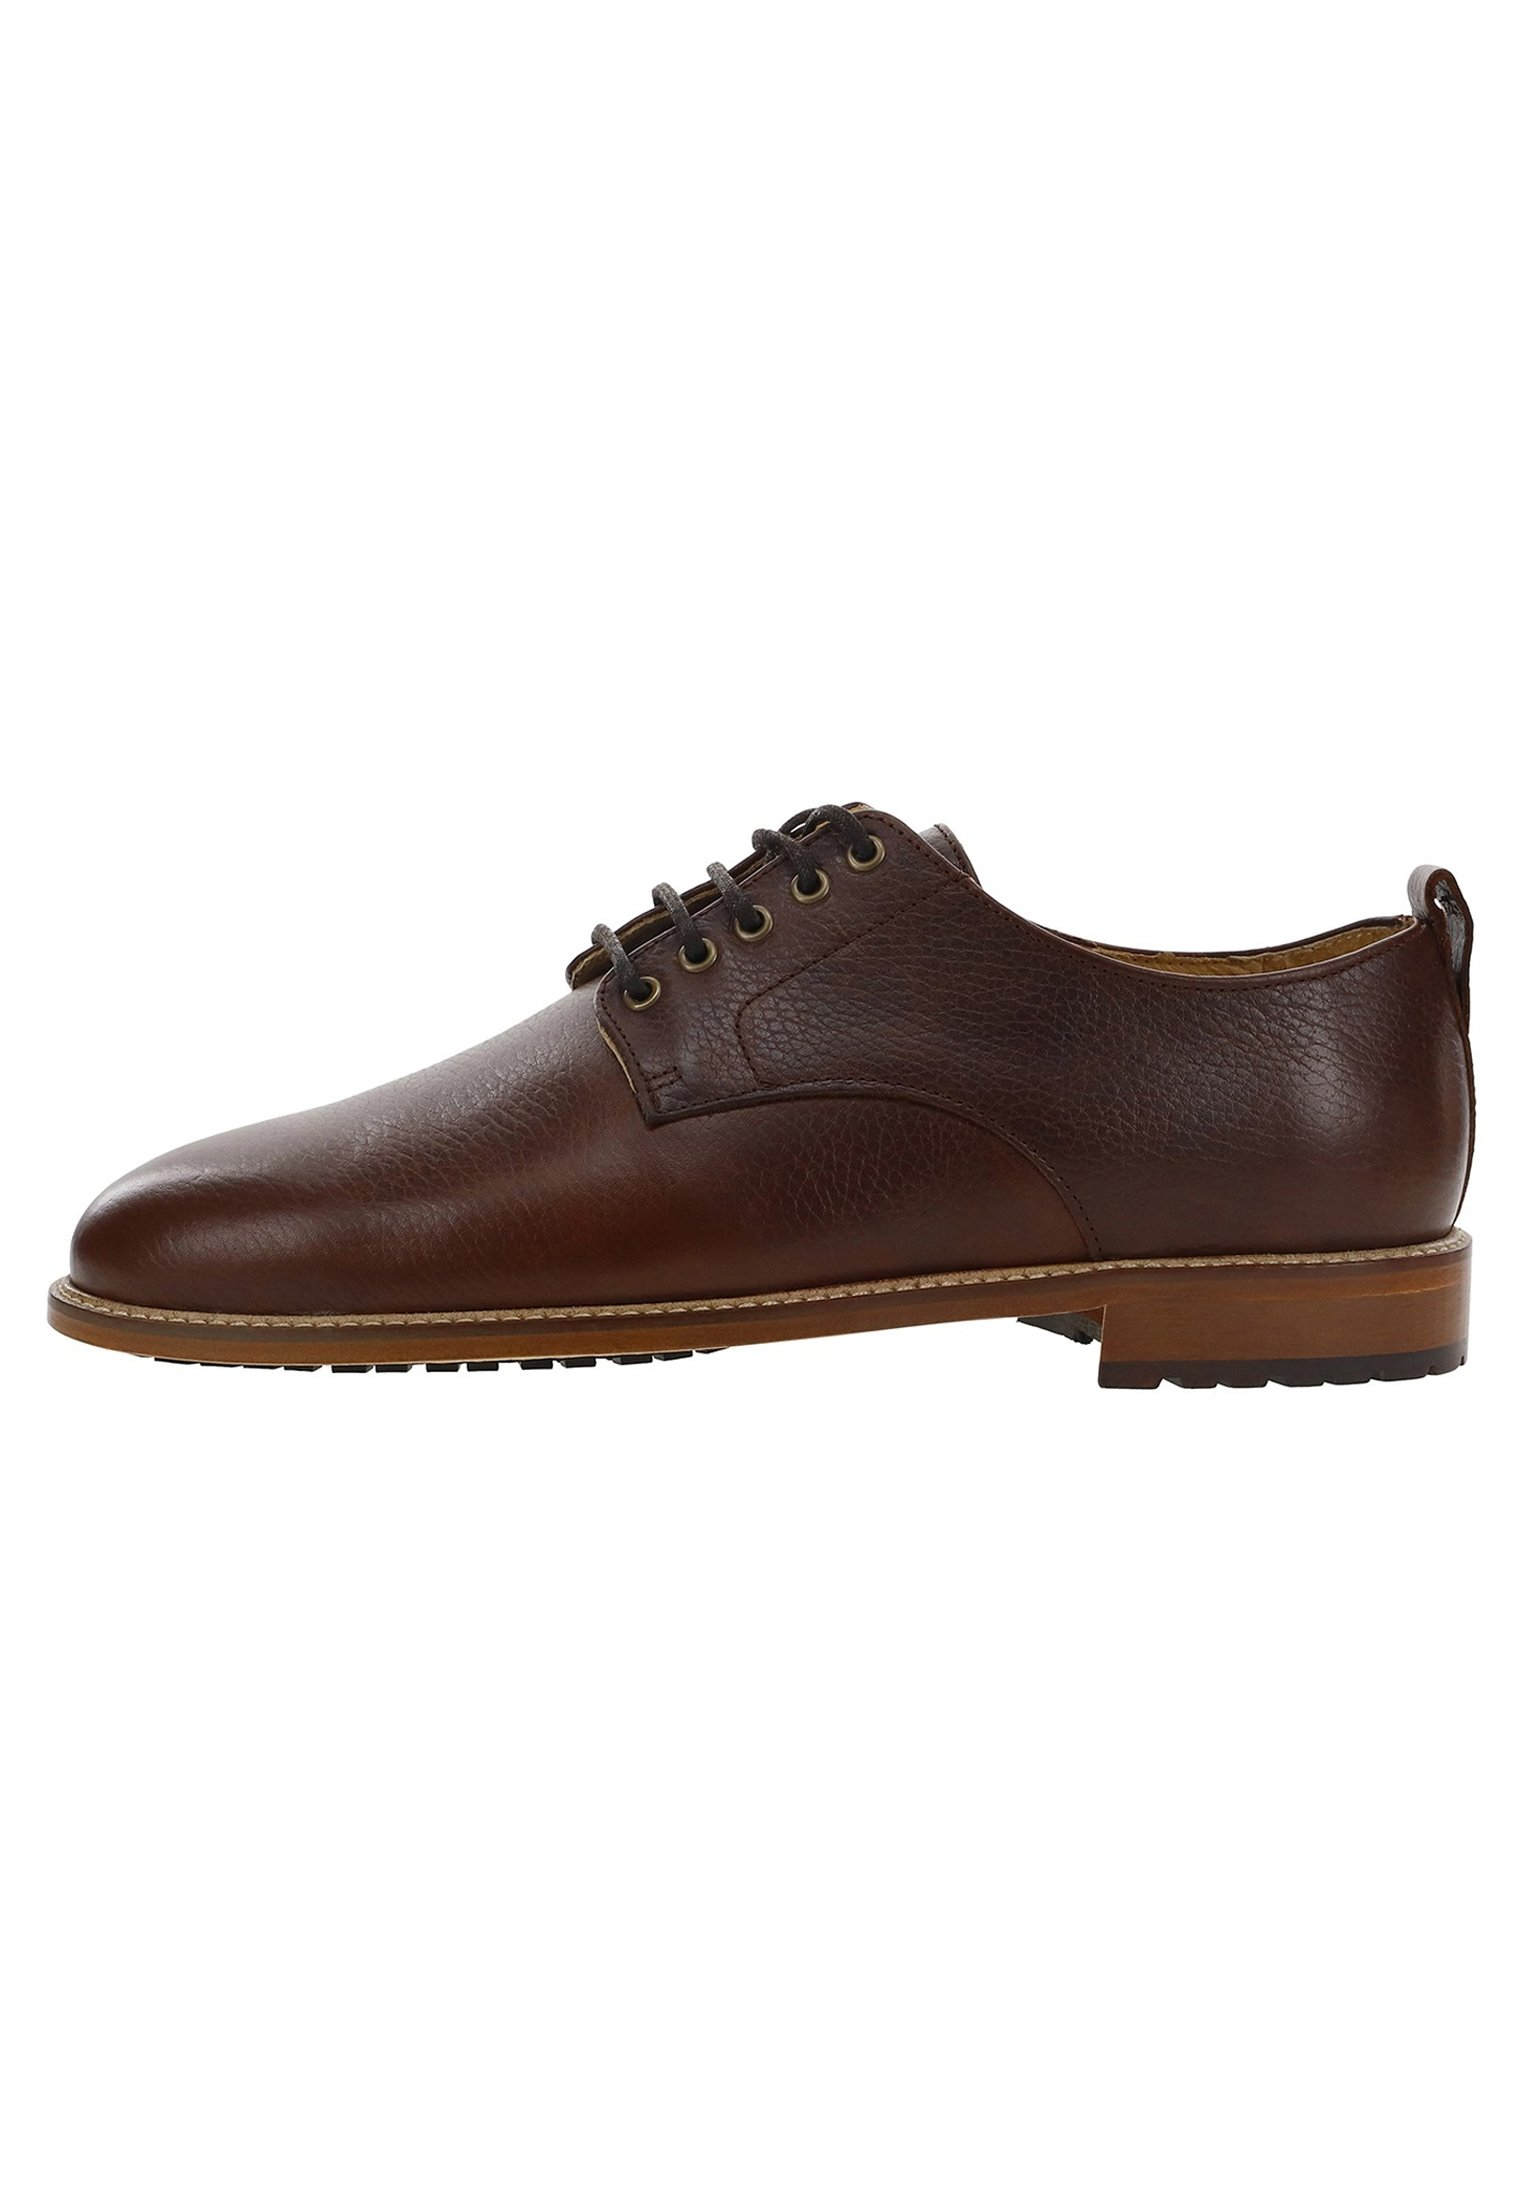 Homme ALFRED - LACE-UPS - Derbies